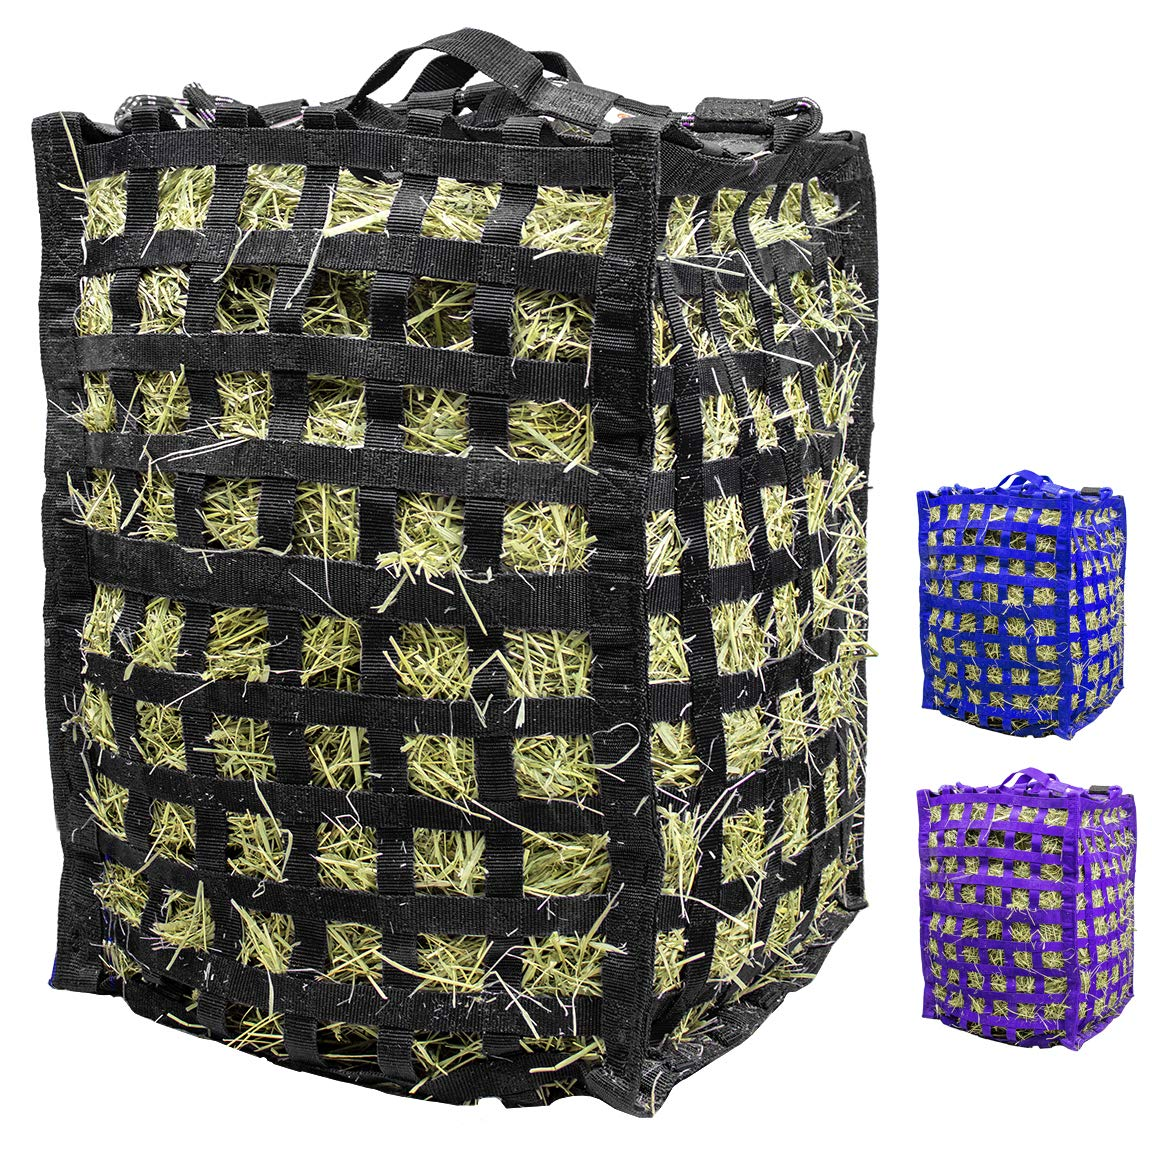 Derby Originals Natural Grazer Patented Four Sided Slow Feed Horse Hay Bag with One Year Warranty